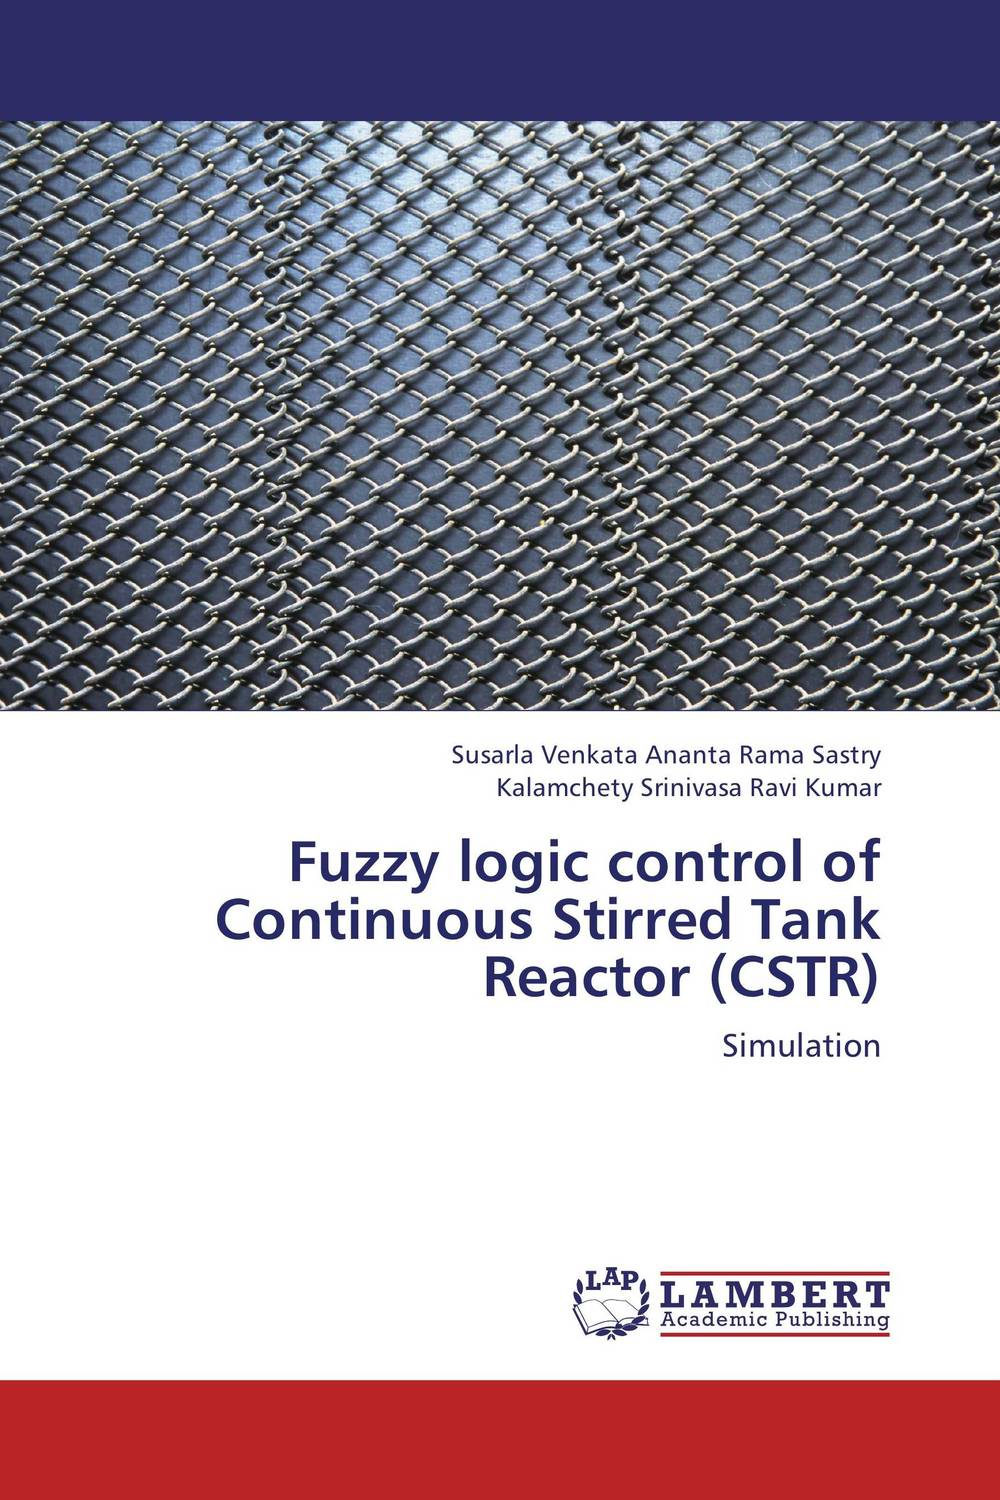 Fuzzy logic control of Continuous Stirred Tank Reactor (CSTR) fuzzy logic supervisory control of discrete event system